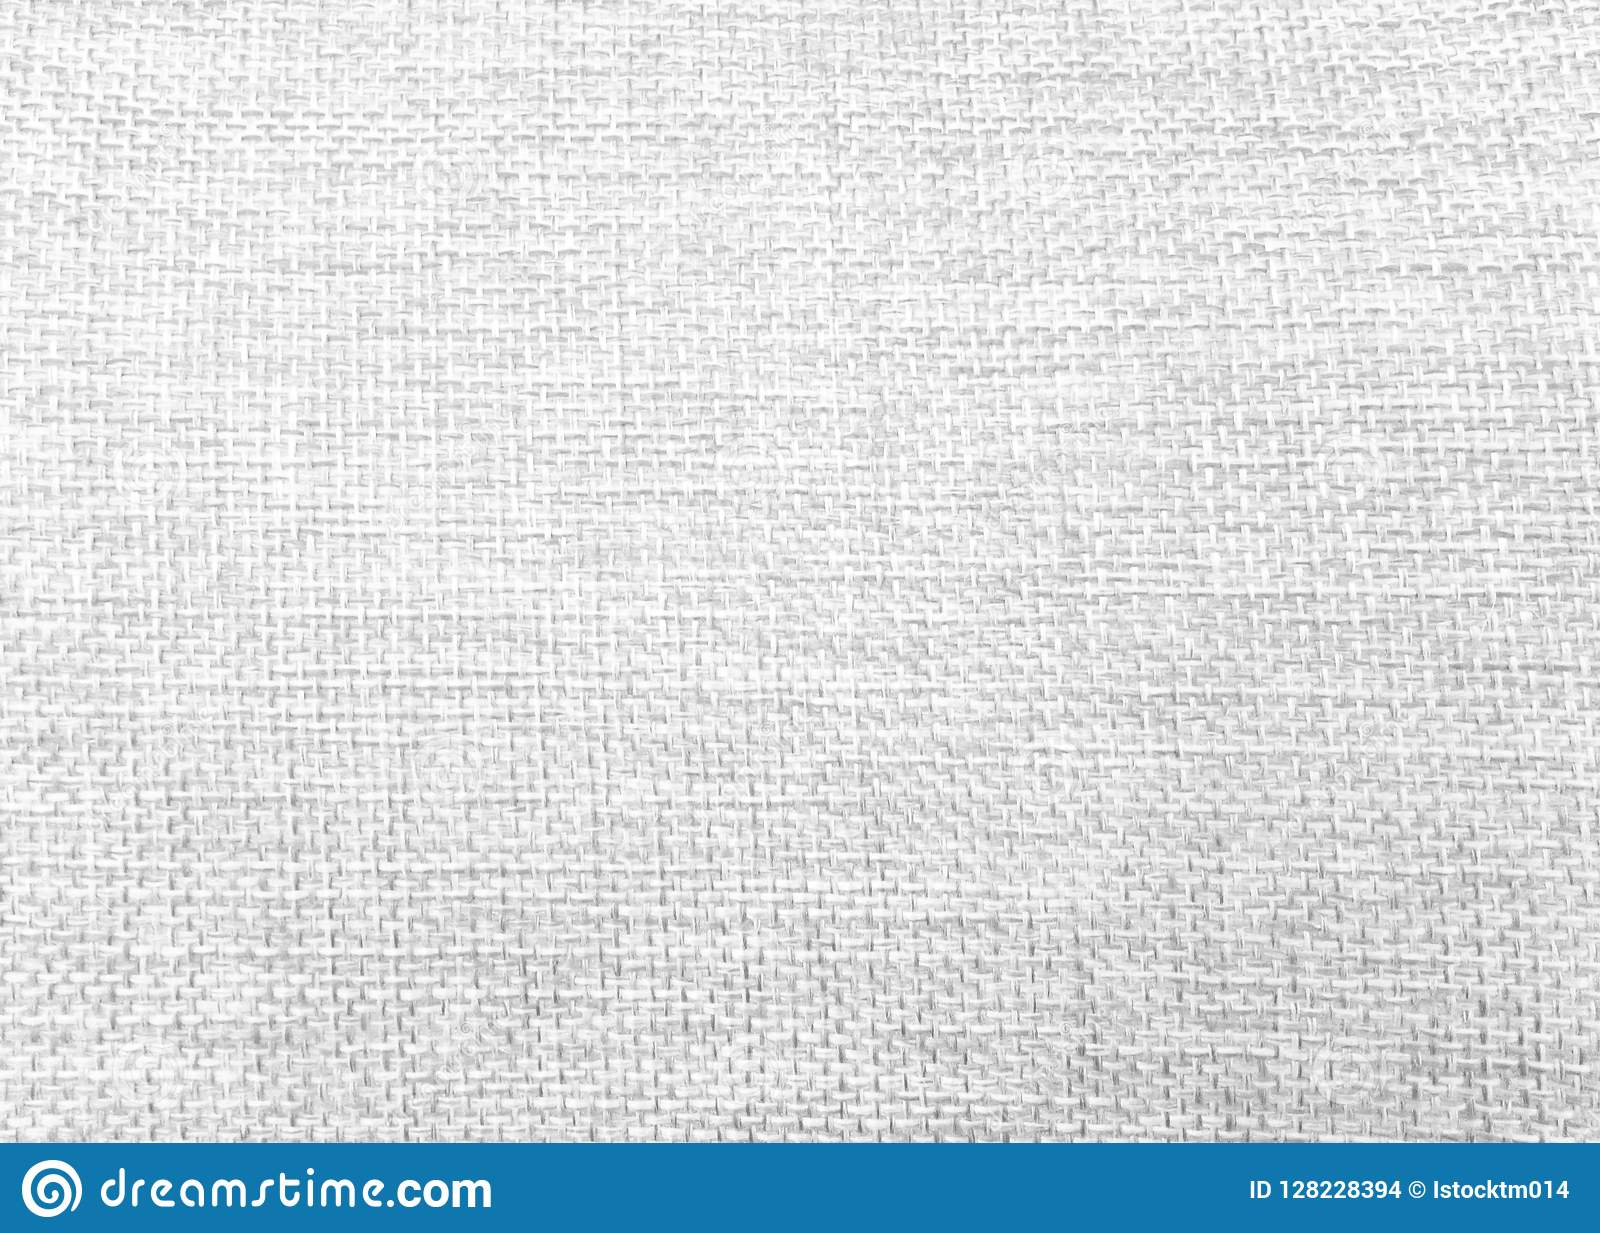 Natural linen background. Fabric texture made from burlap material.